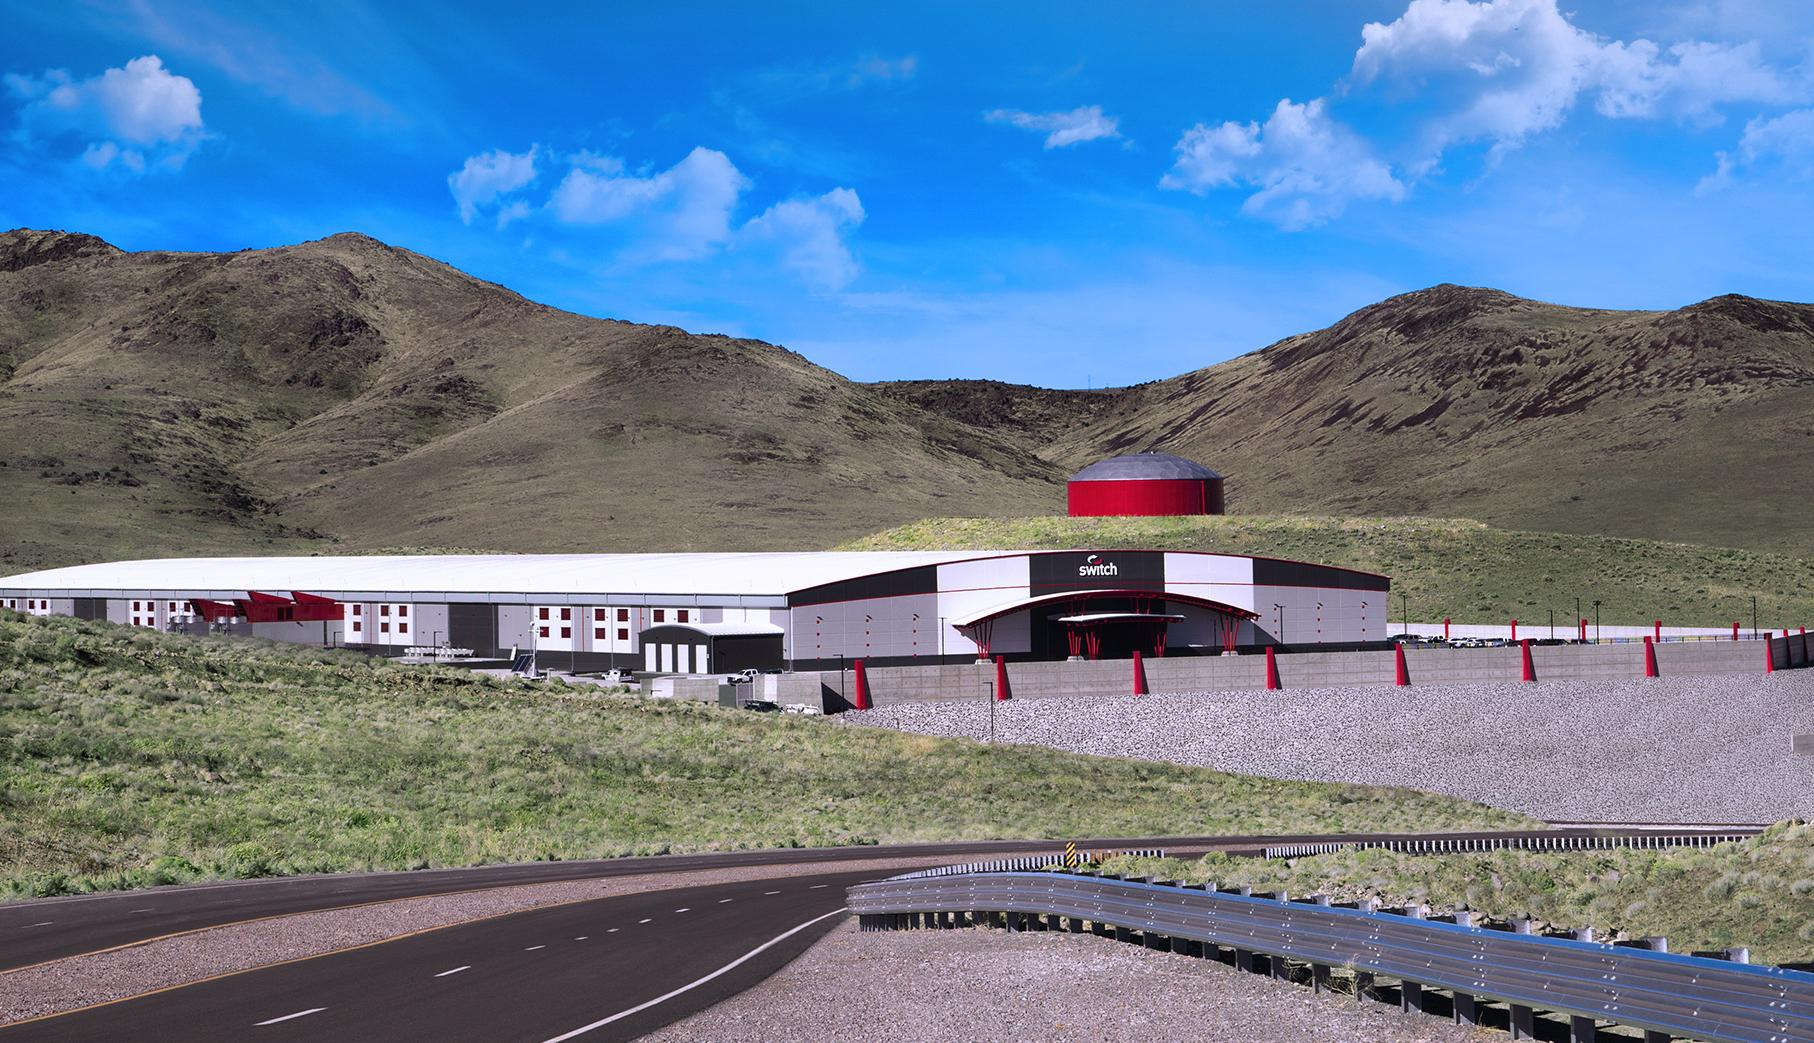 Switch TAHOE RENO 1 Data Center colocation facility; largest in the world